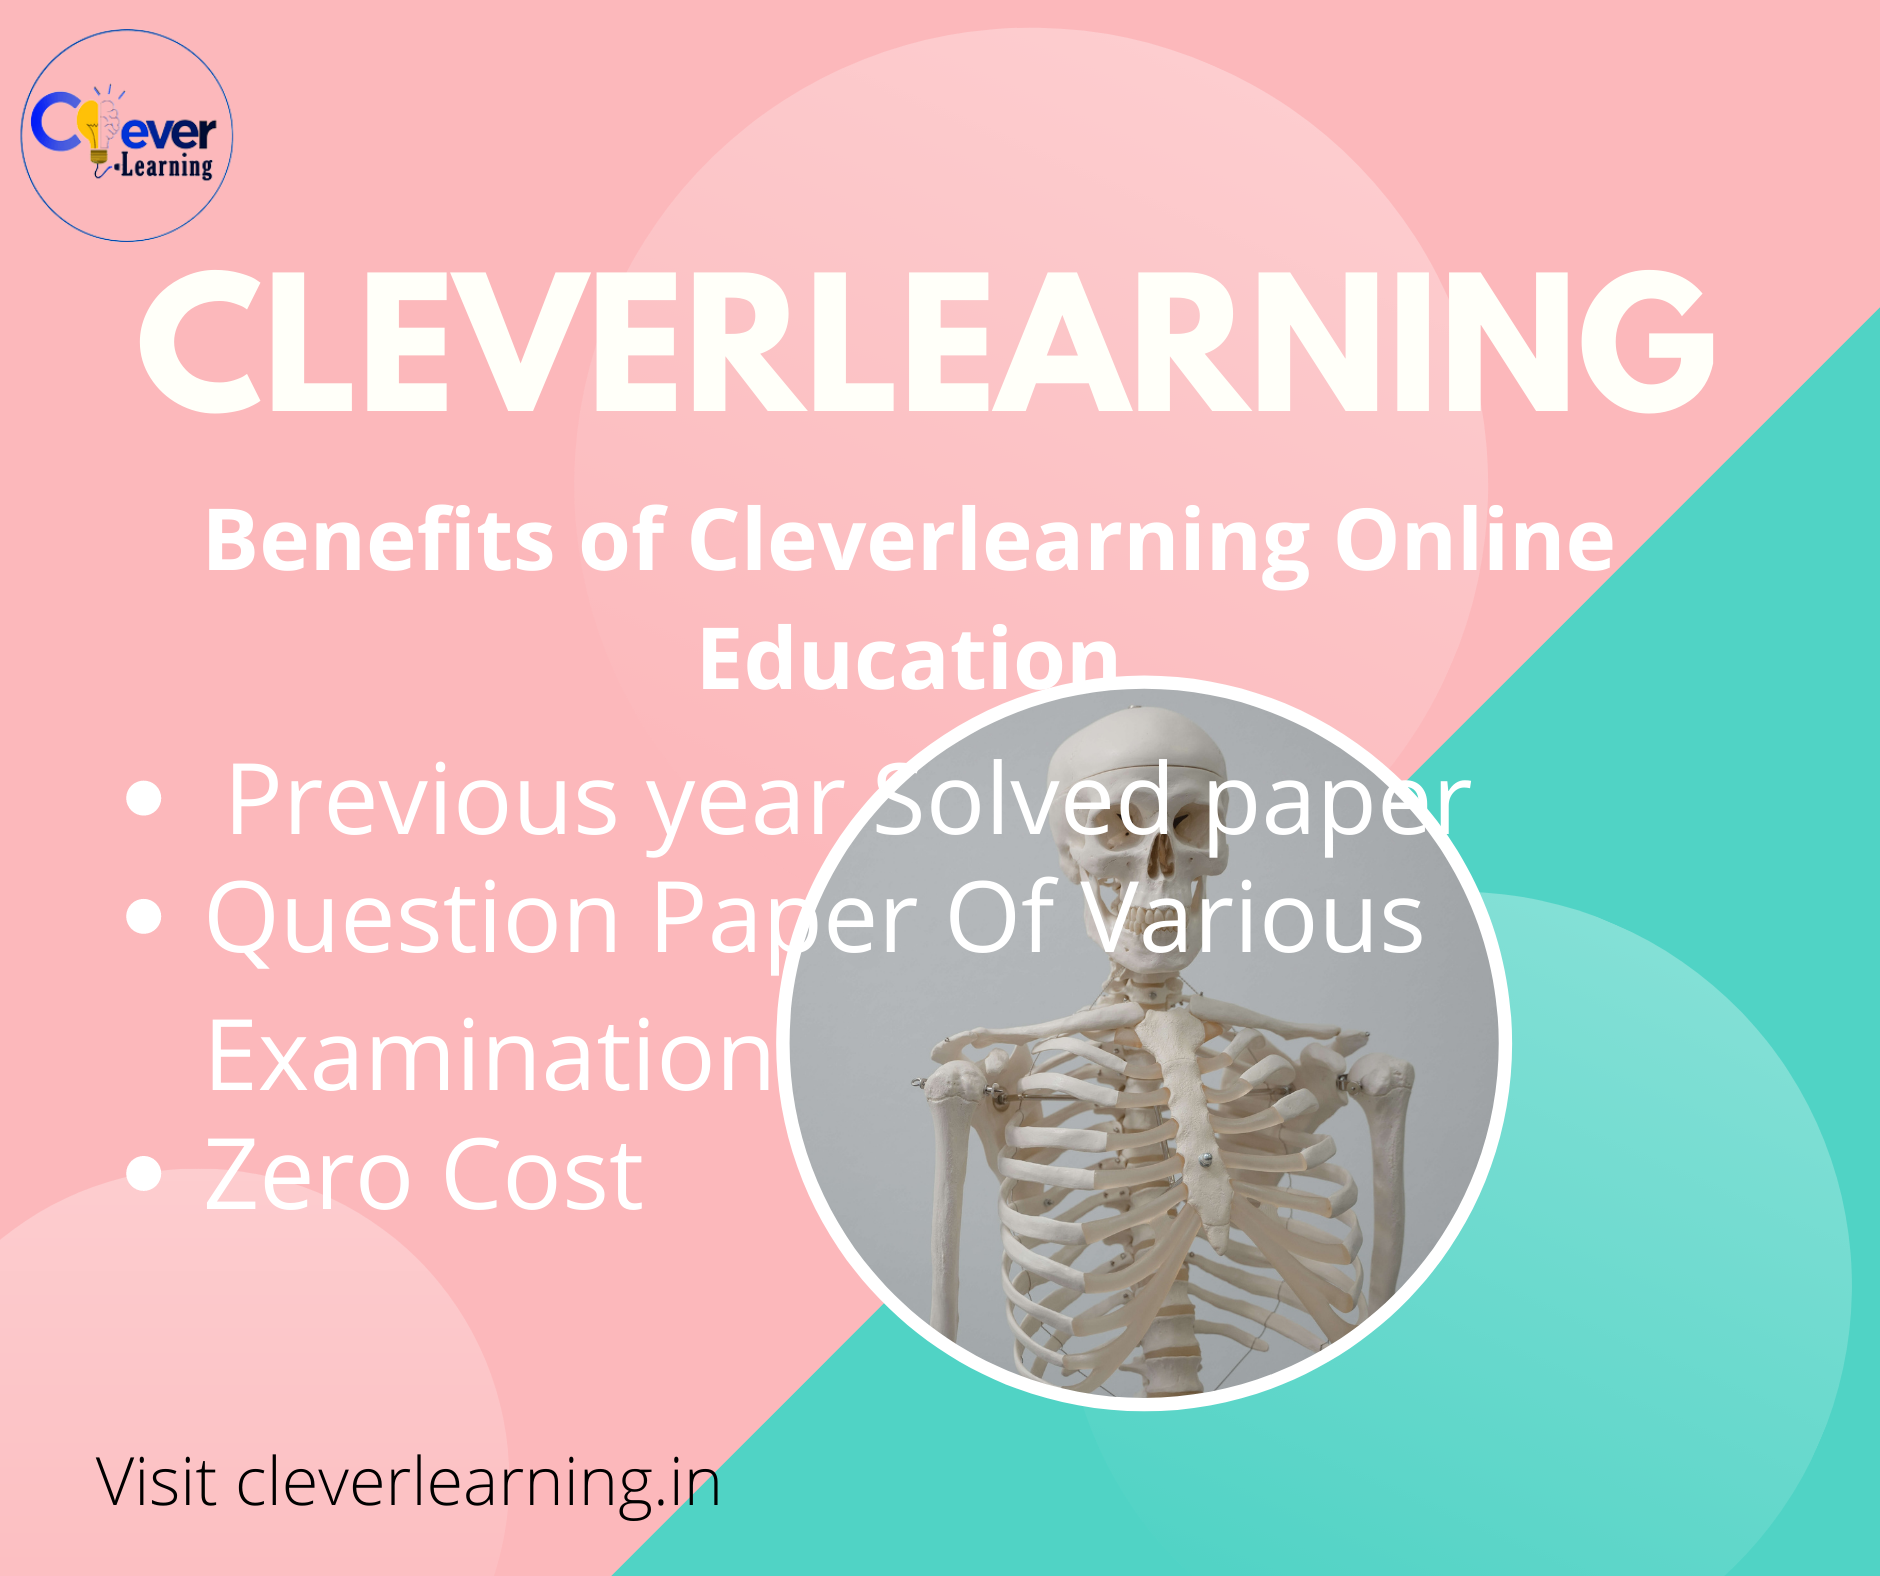 cleverlearning startup nation images.png